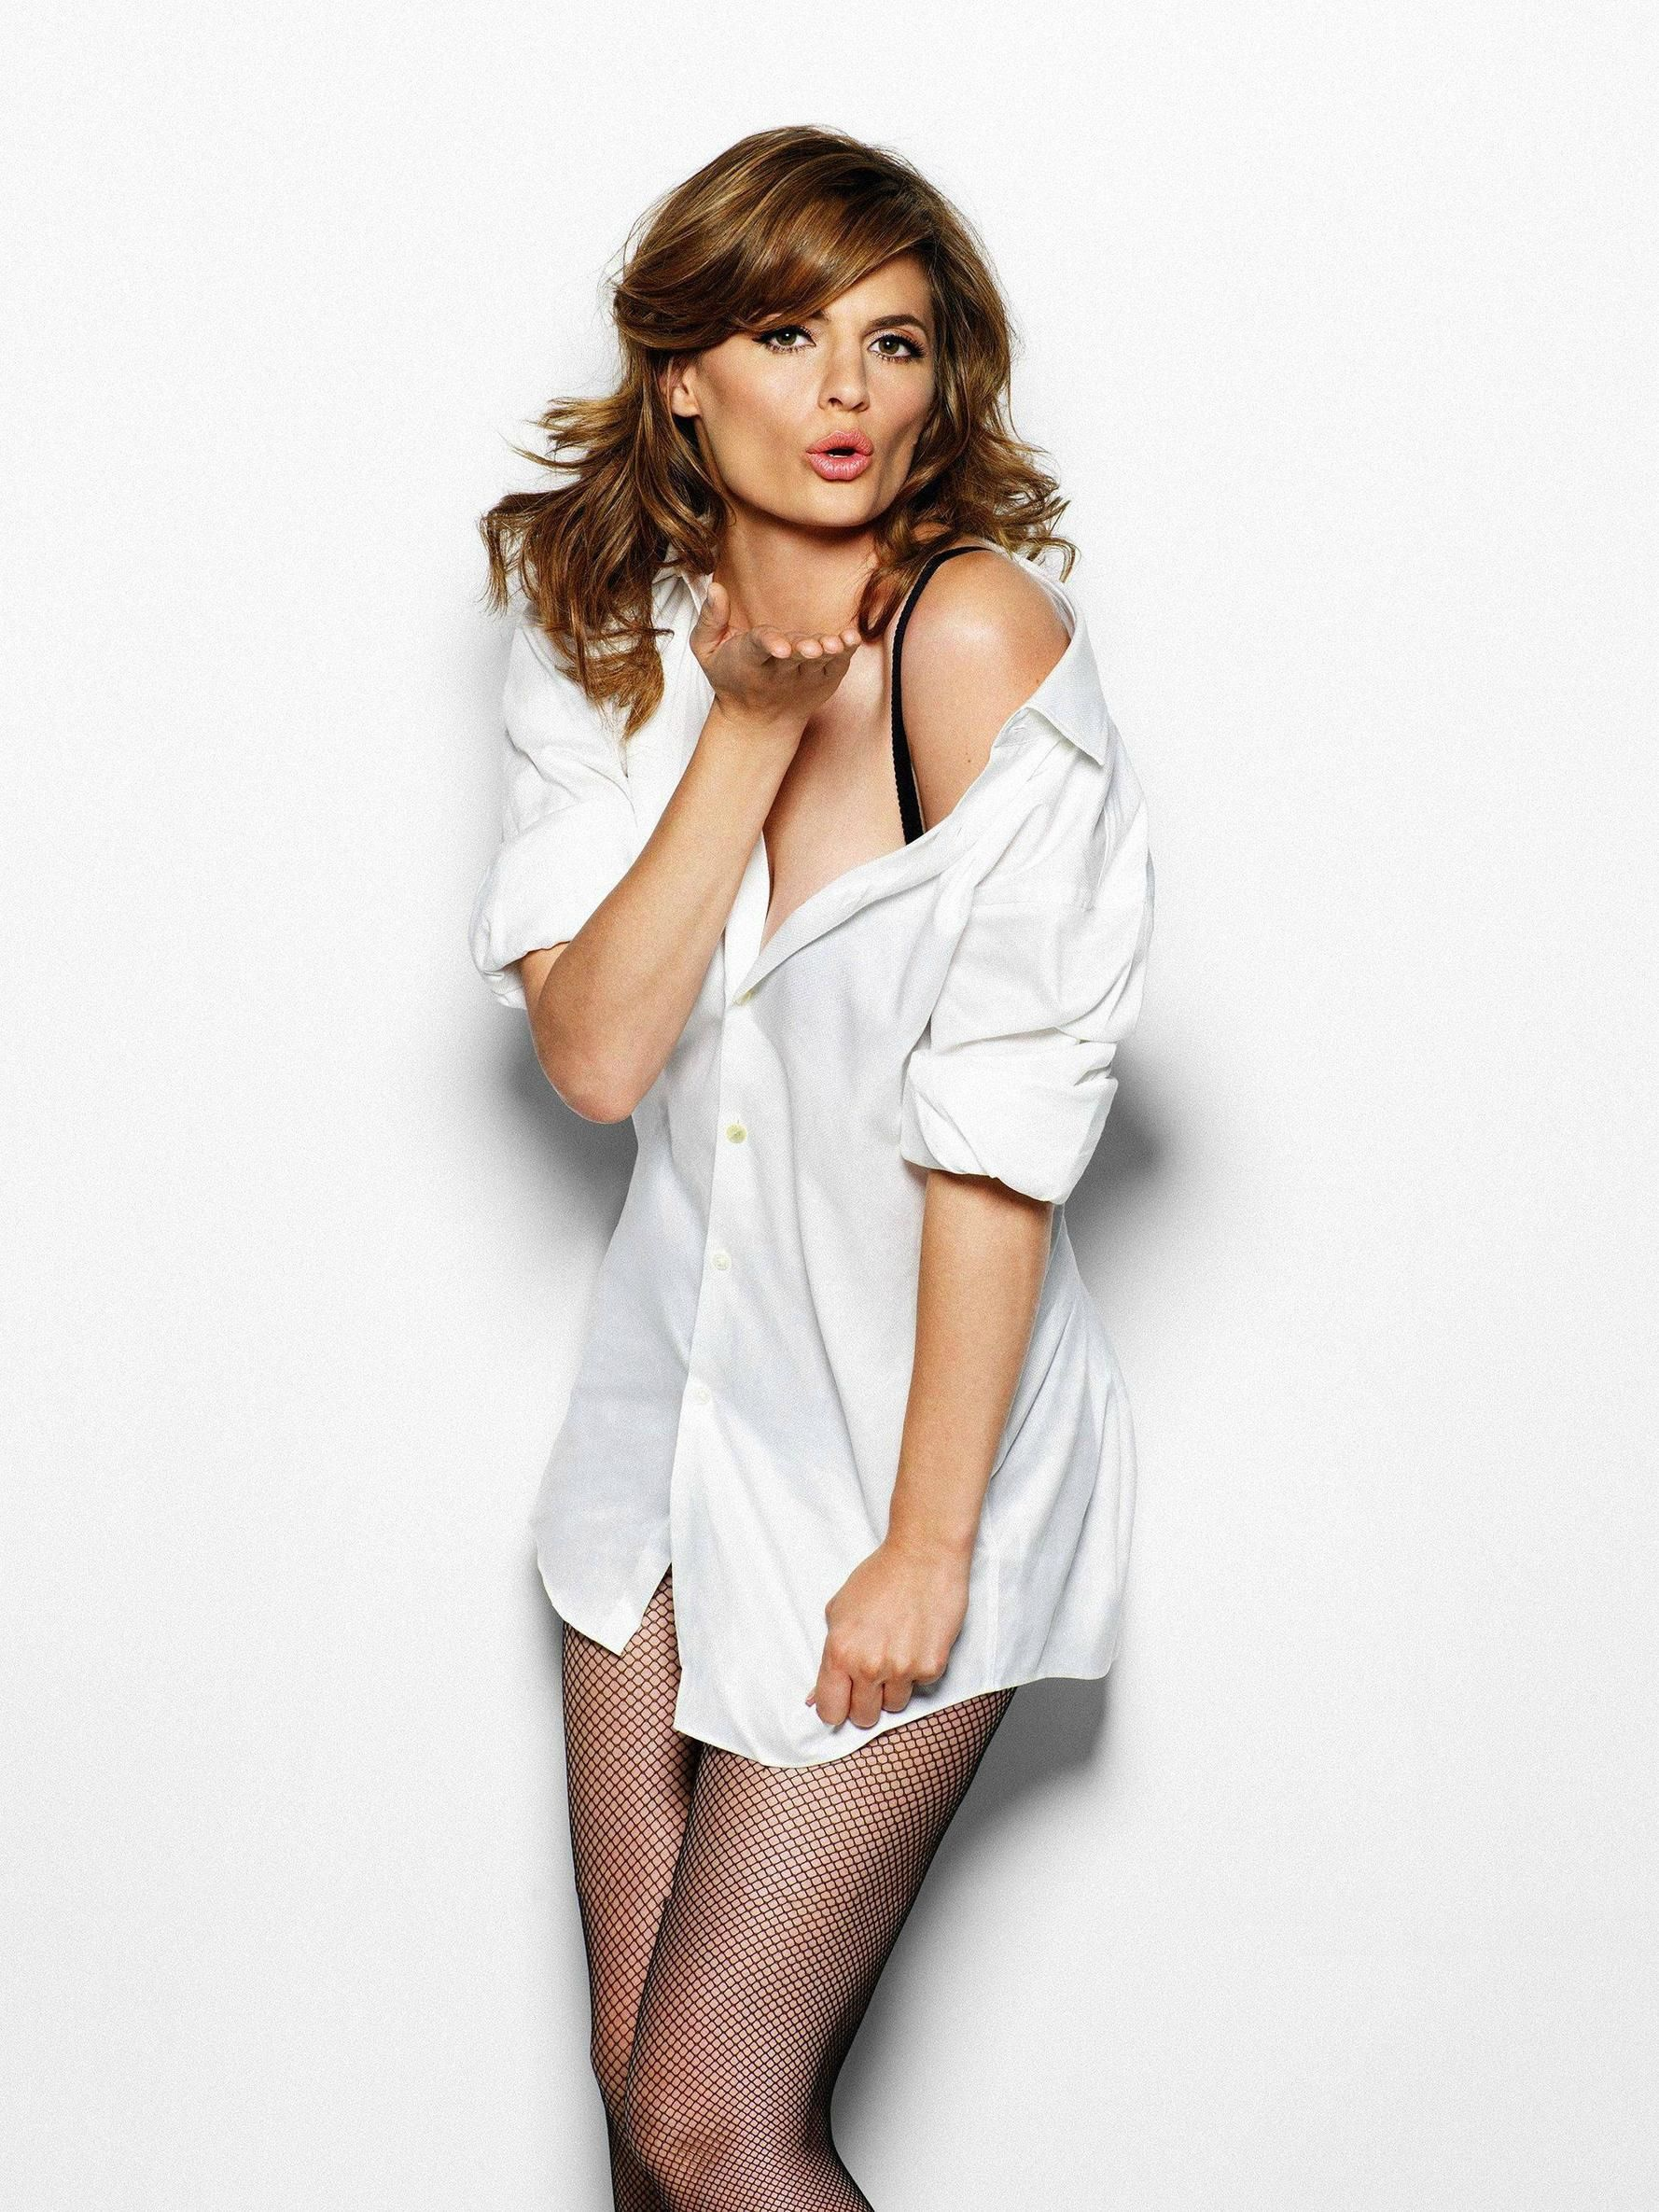 61 Hottest Stana Katic Pictures Will Make You Want Her Now ...